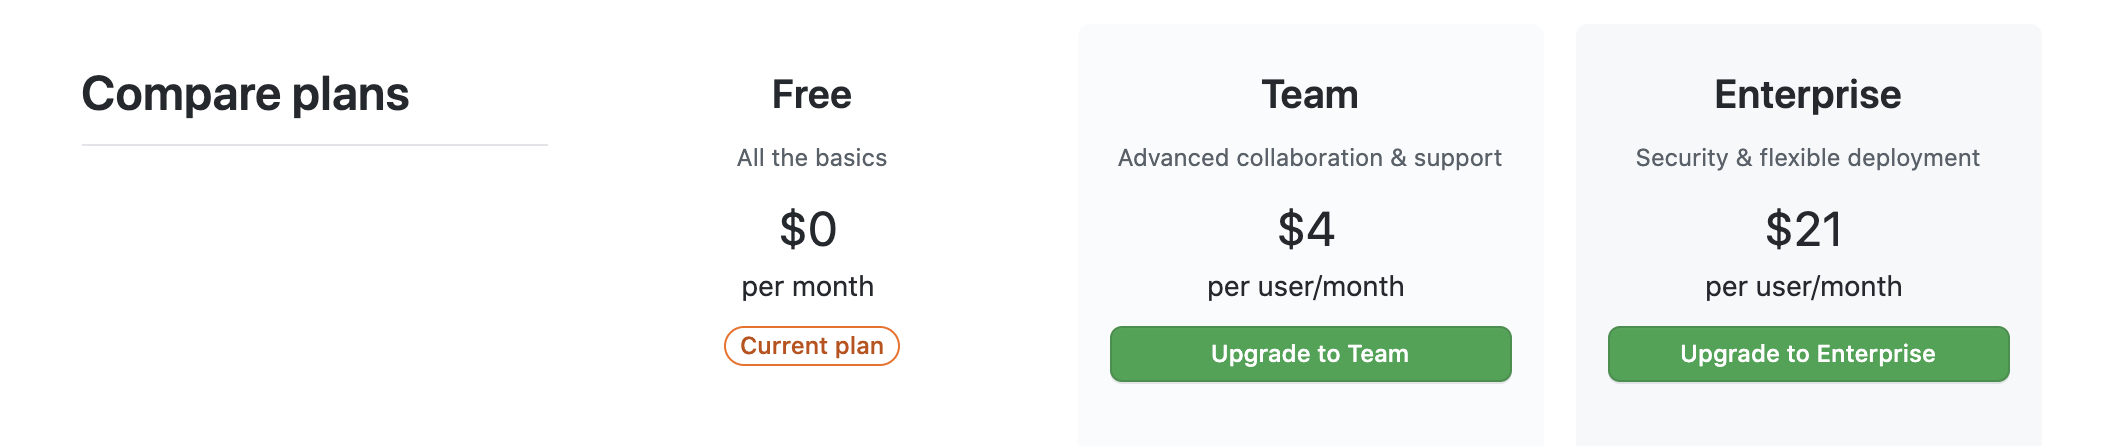 Compare plans and upgrade